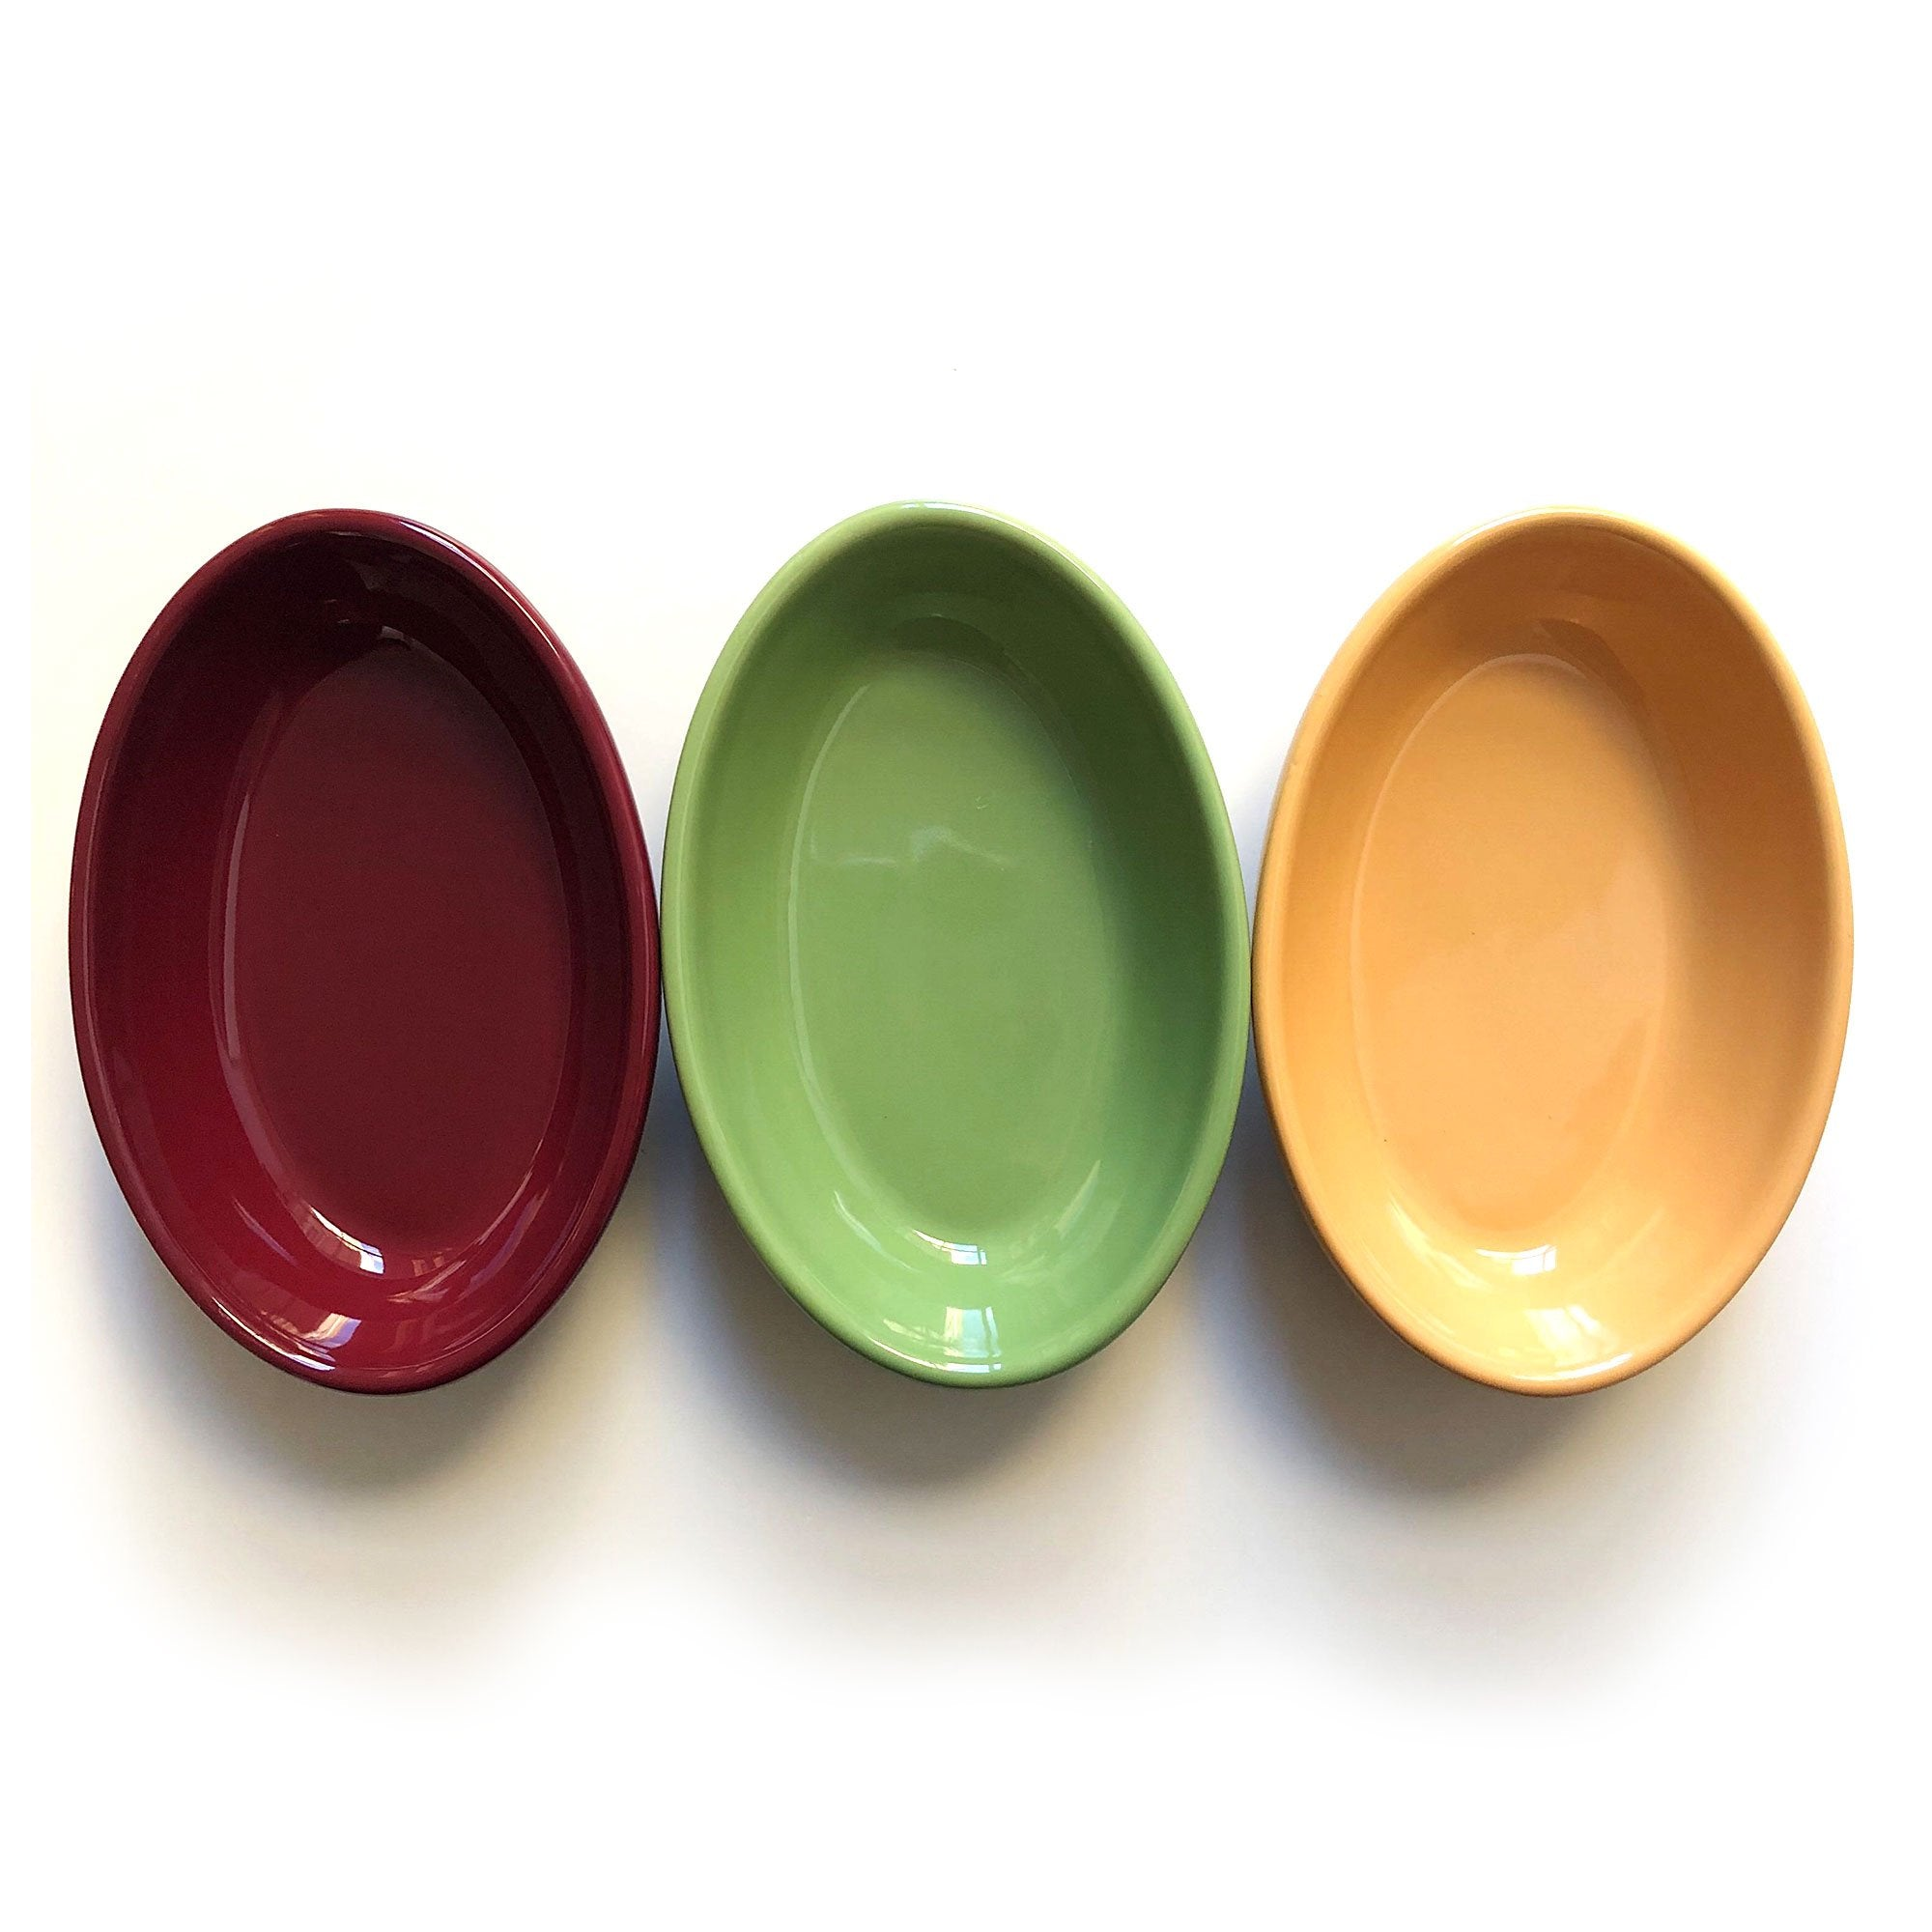 Oval Tapas Serving Dishes - Set of 6